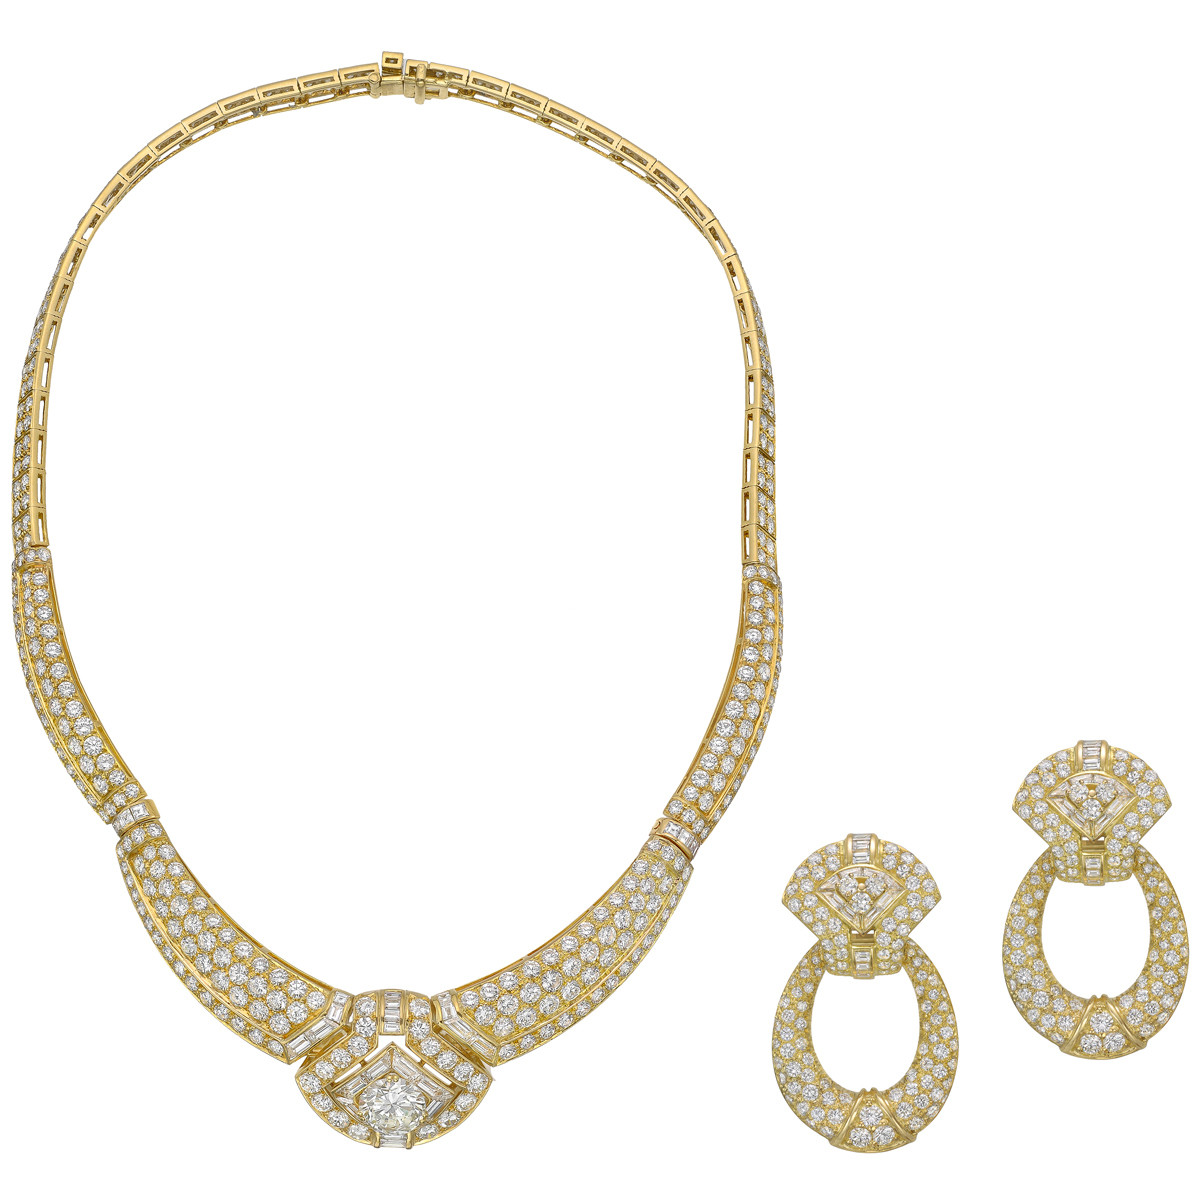 Diamond Necklace & Earrings Set